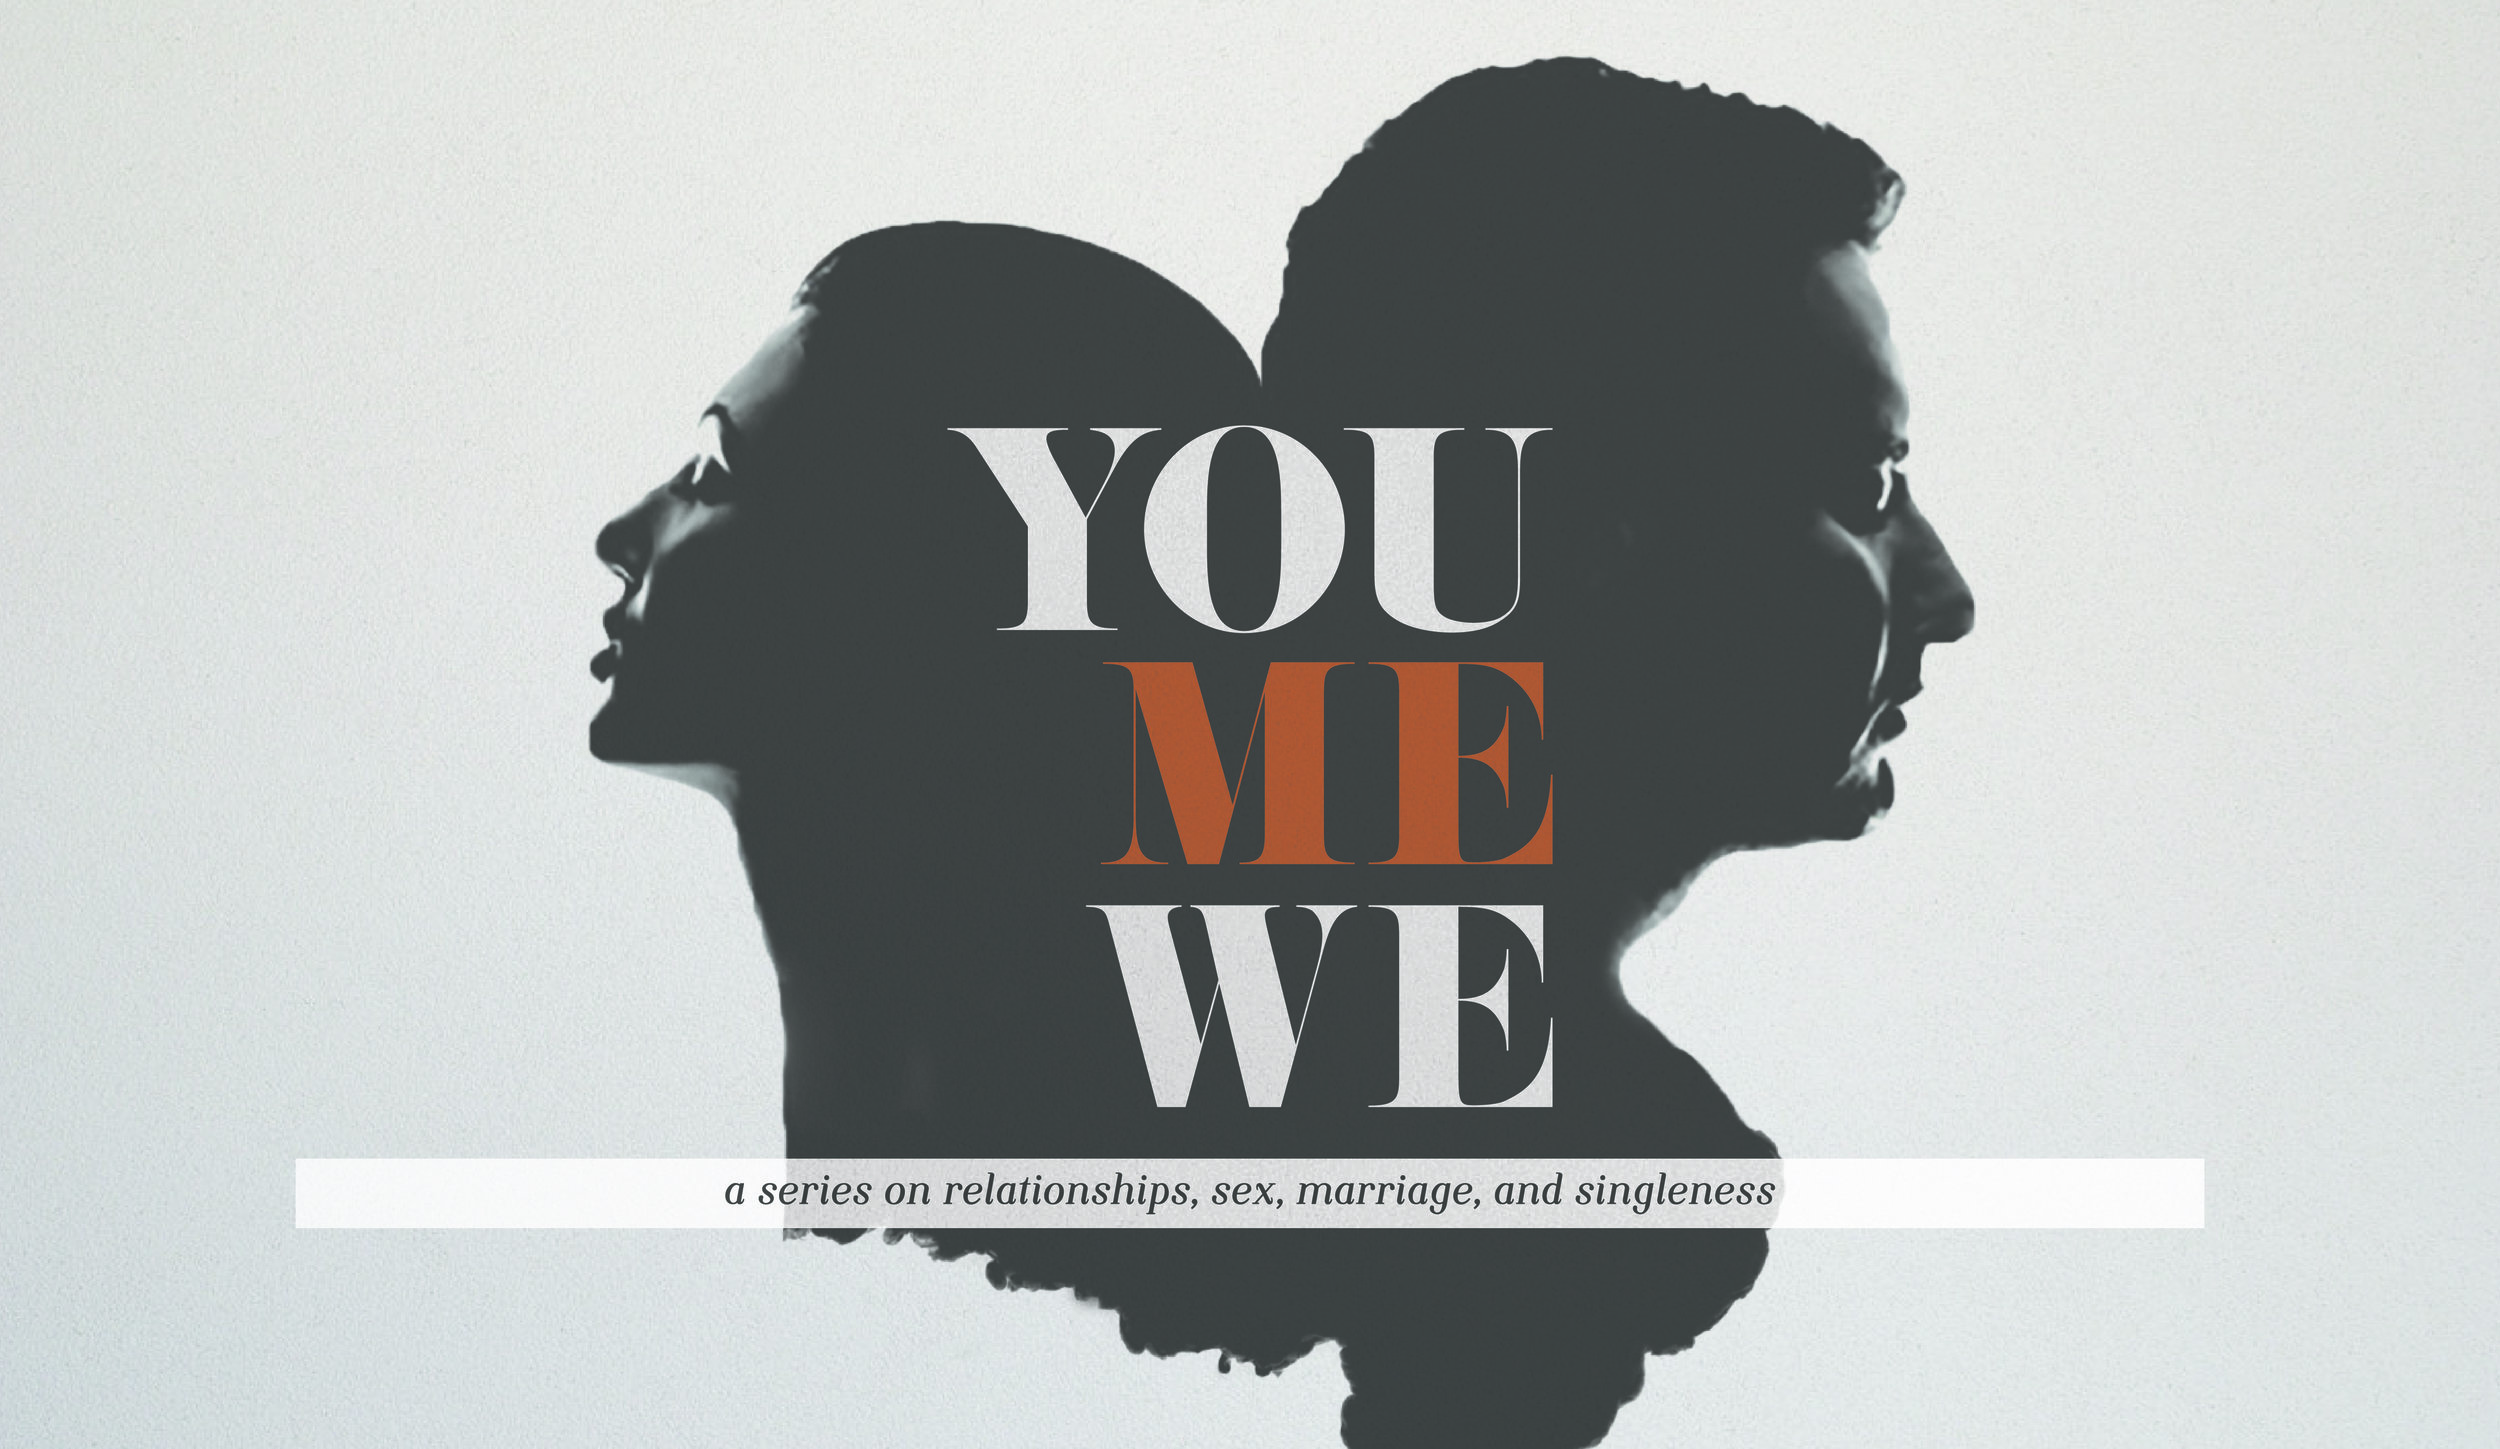 You, Me, We - a series on relationships, sex, marriage, and singleness